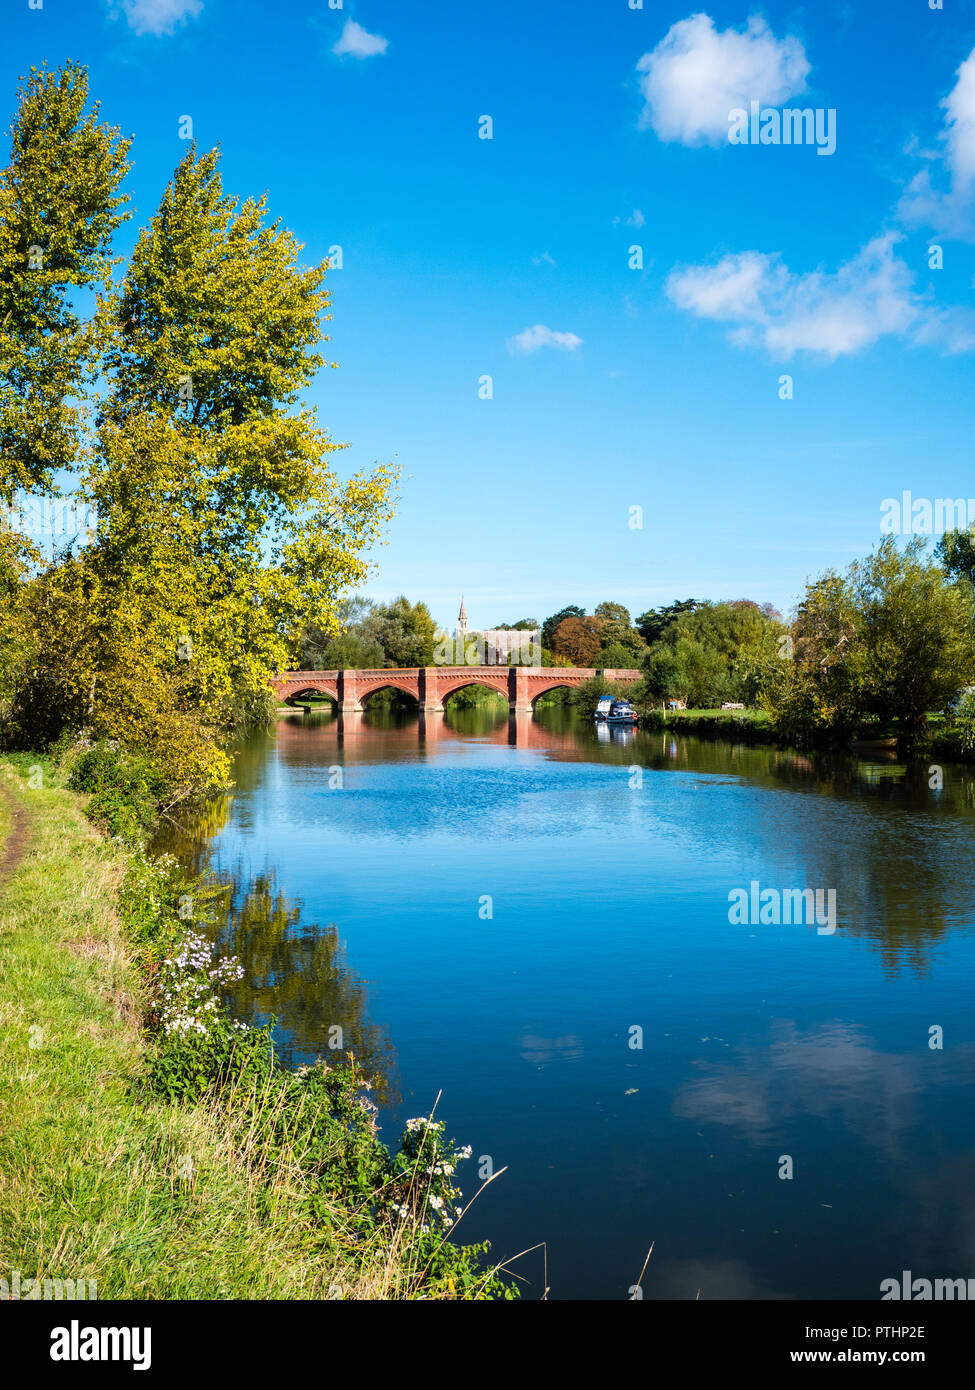 Clifton Hampden Bridge,Clifton Hampden, River Thames, Oxfordshire, England, UK, GB. - Stock Image